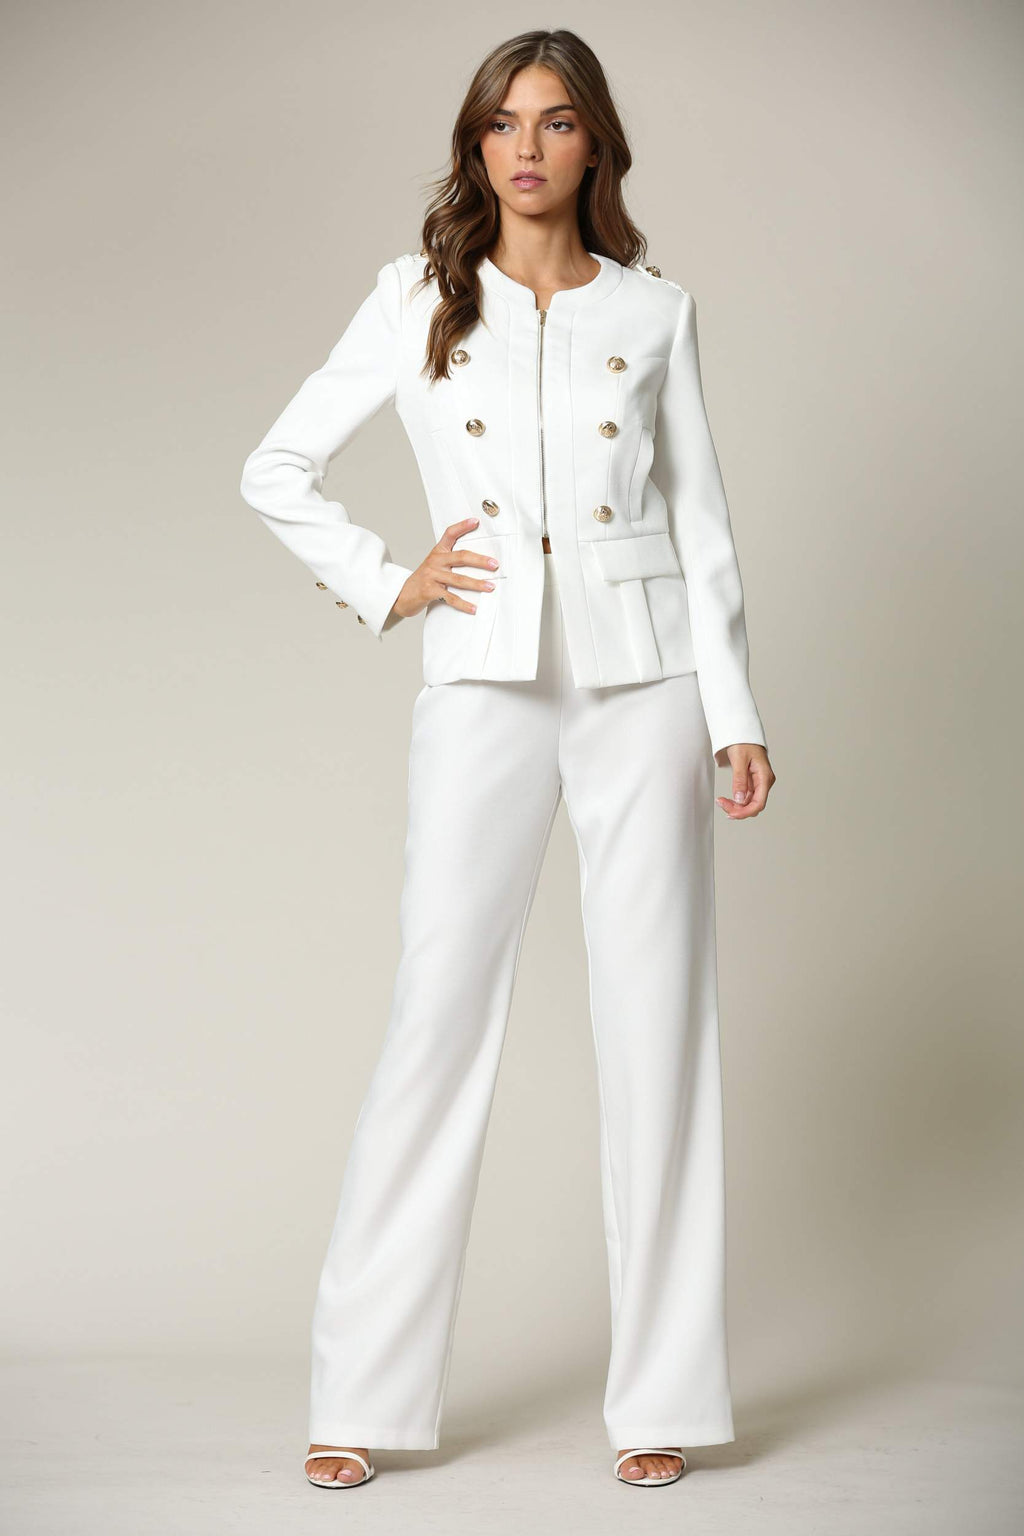 Mix & Match Two Piece Tailored Pant Suit - White - STEVEN WICK